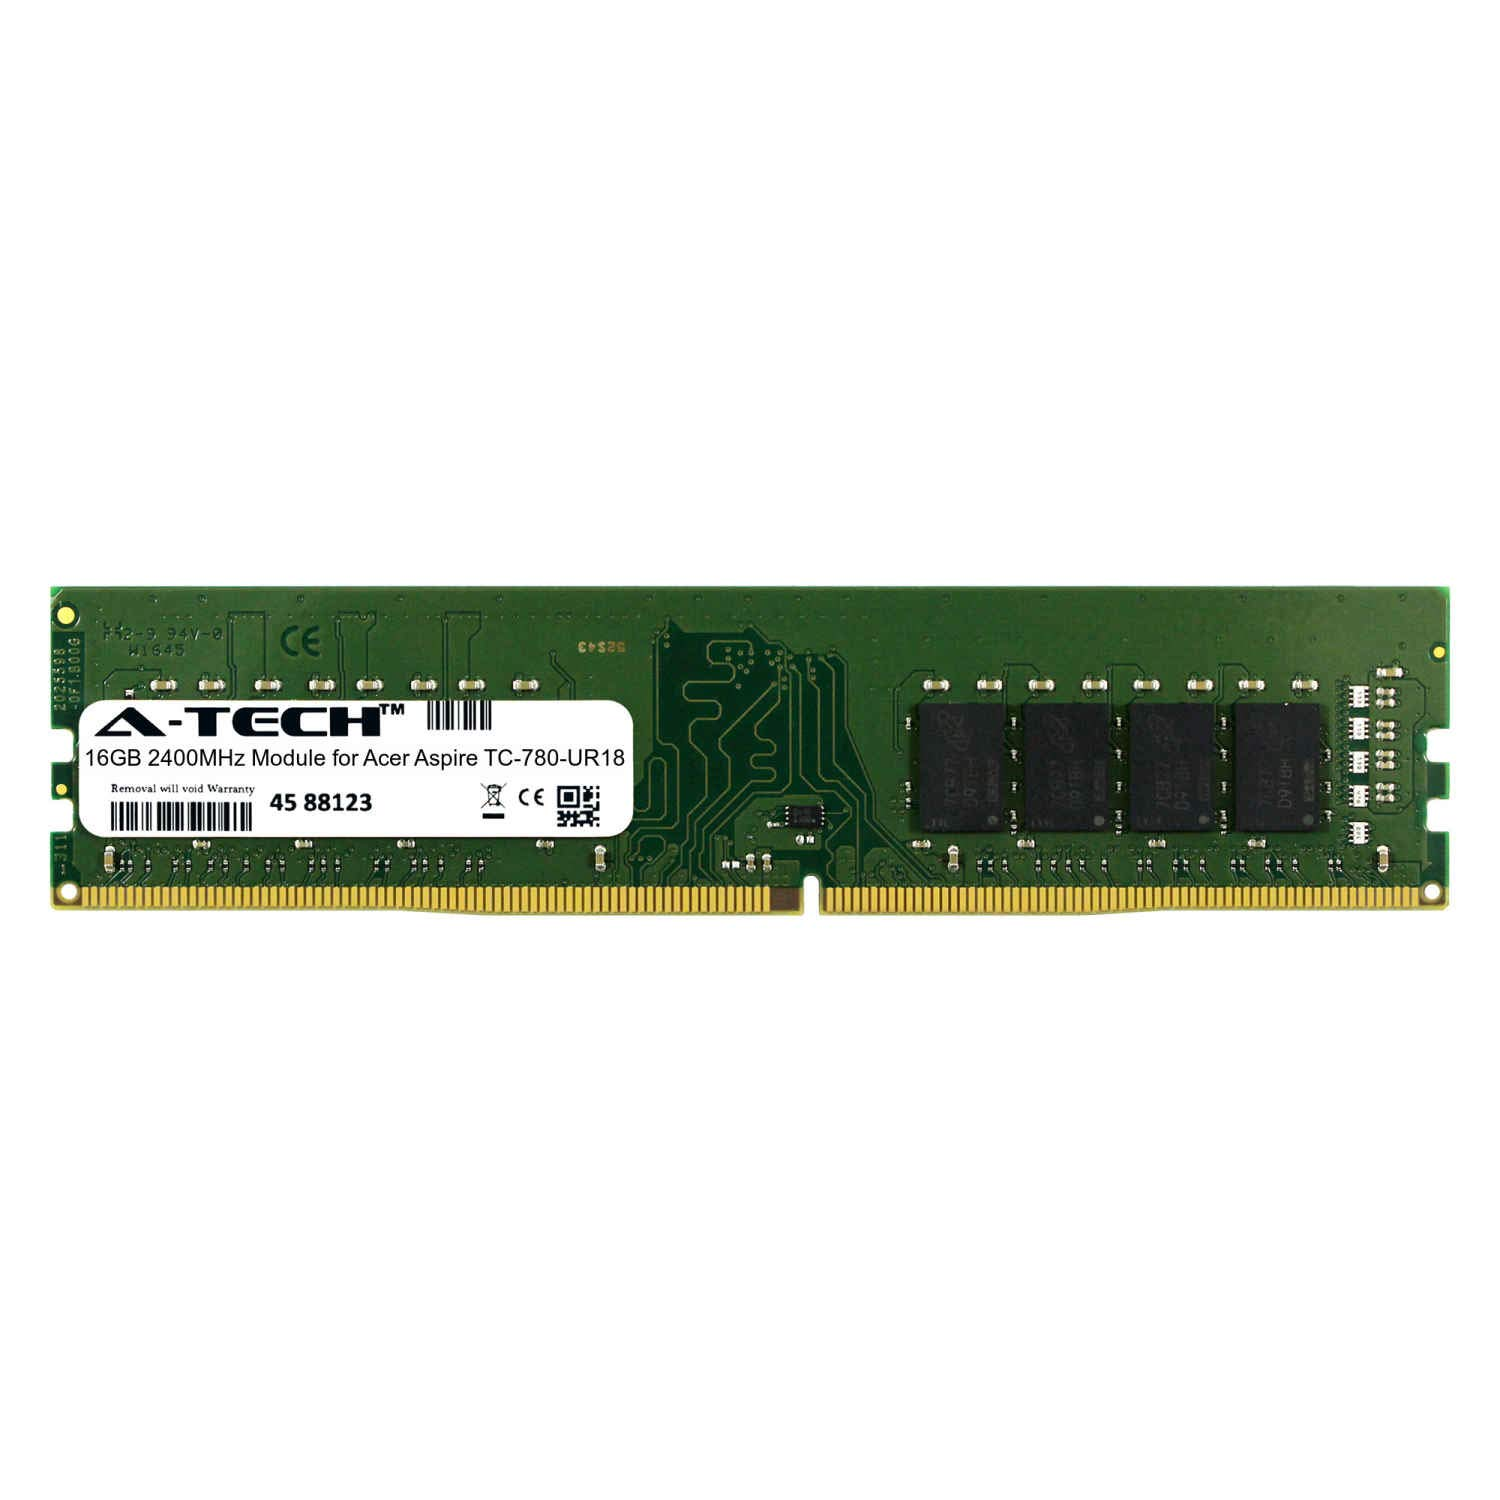 A-Tech 16GB Module for Acer Aspire TC-780-UR18 Desktop & Workstation Motherboard Compatible DDR4 2400Mhz Memory Ram (ATMS267496A25822X1)